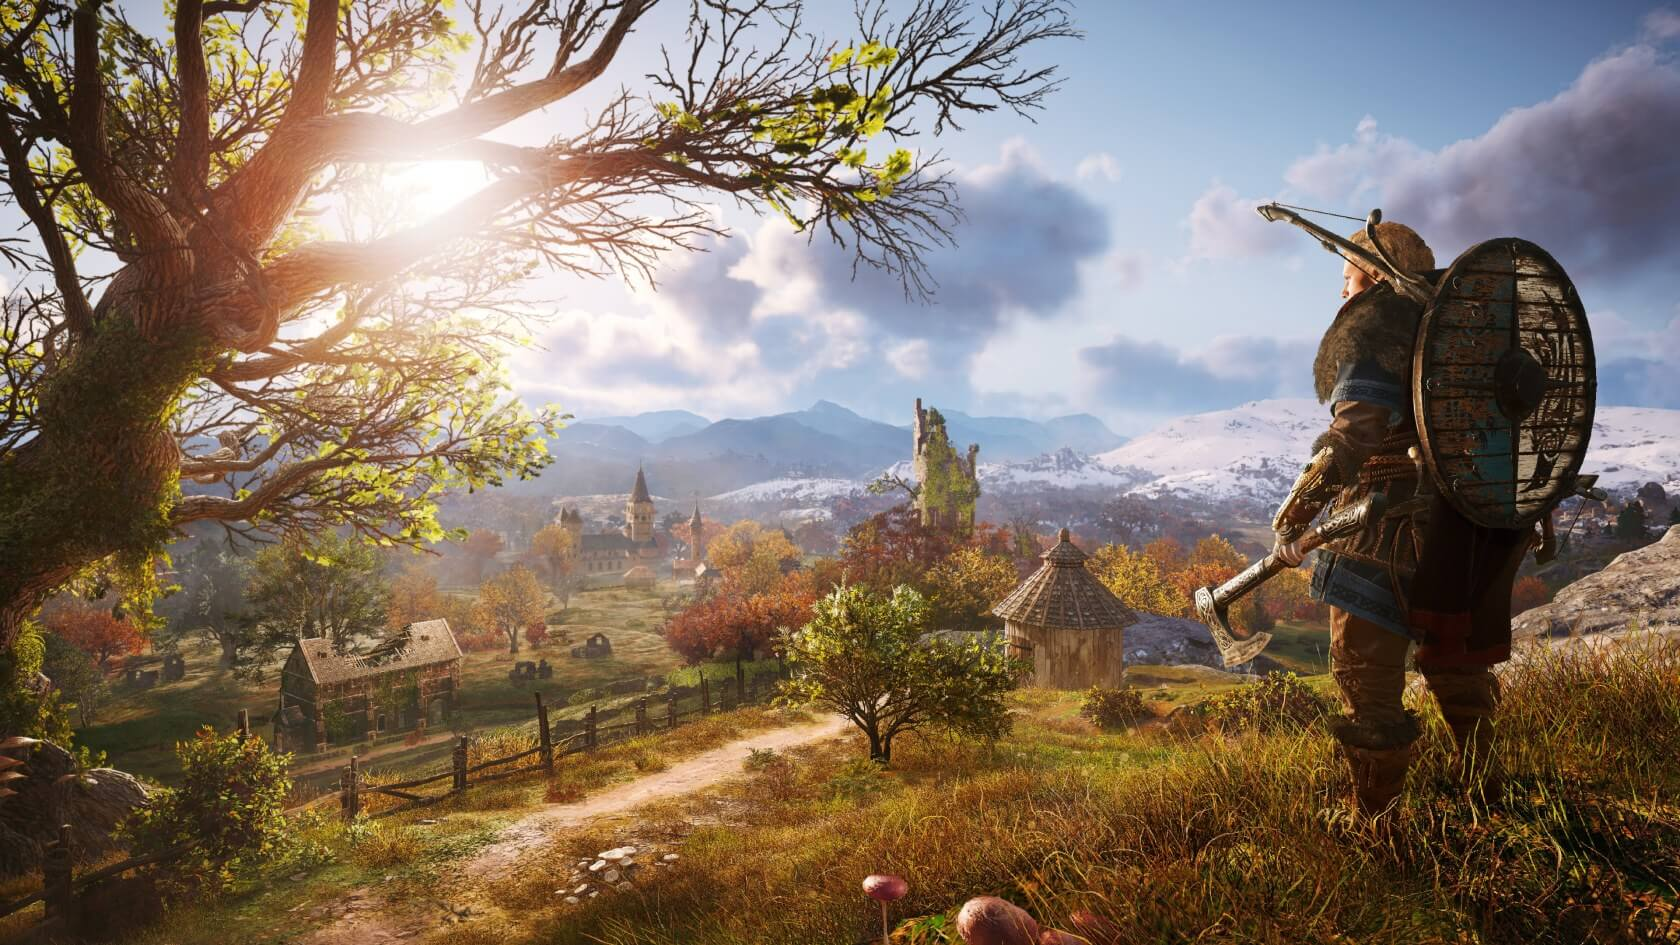 30 minutes of Assassin's Creed: Valhalla gameplay has been leaked 1